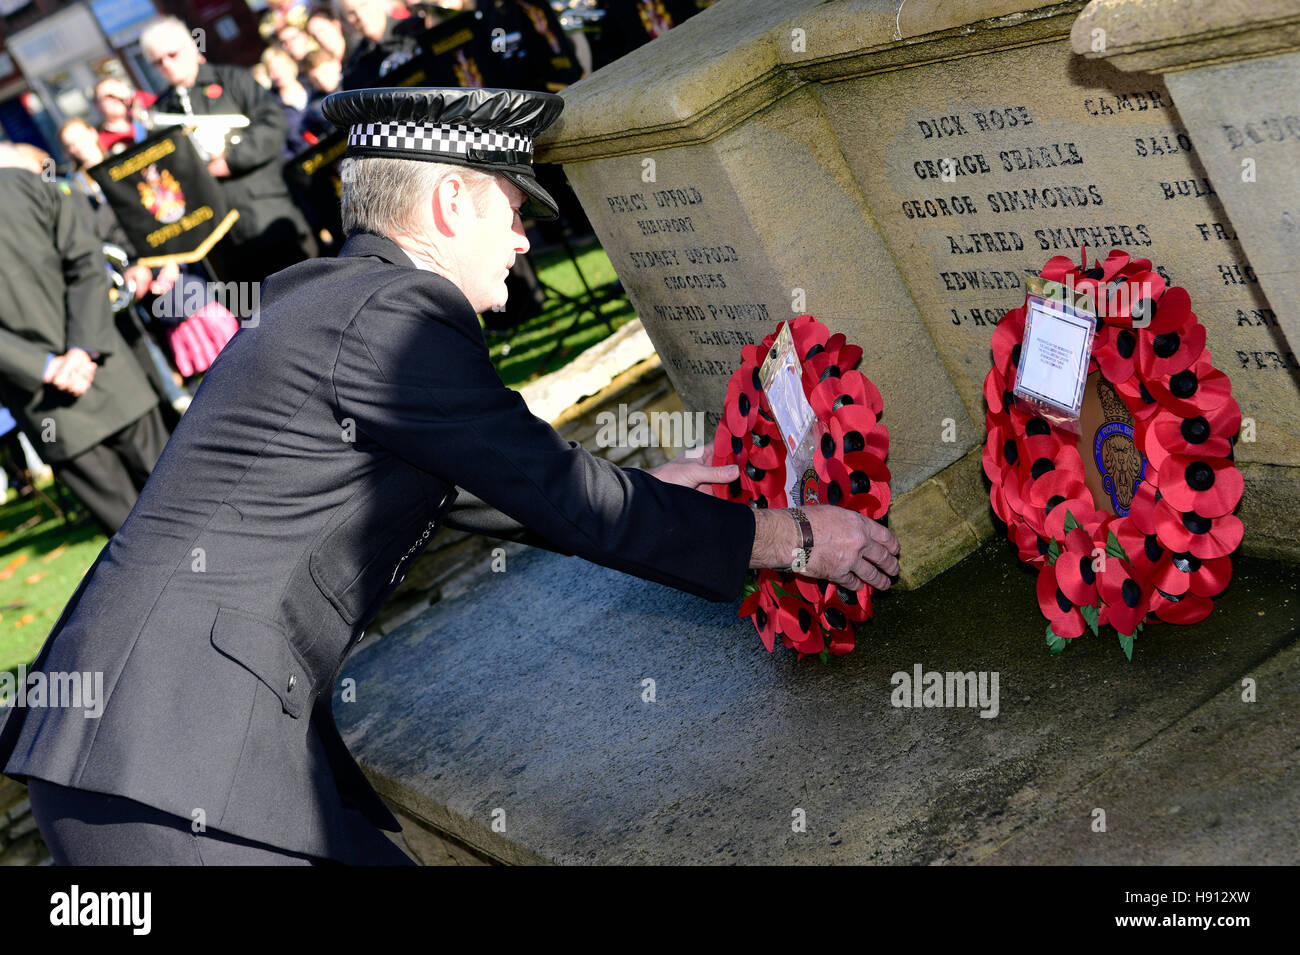 Police officer laying a wreath on Remembrance Sunday, Haslemere, Surrey, UK.13 November 2016. - Stock Image